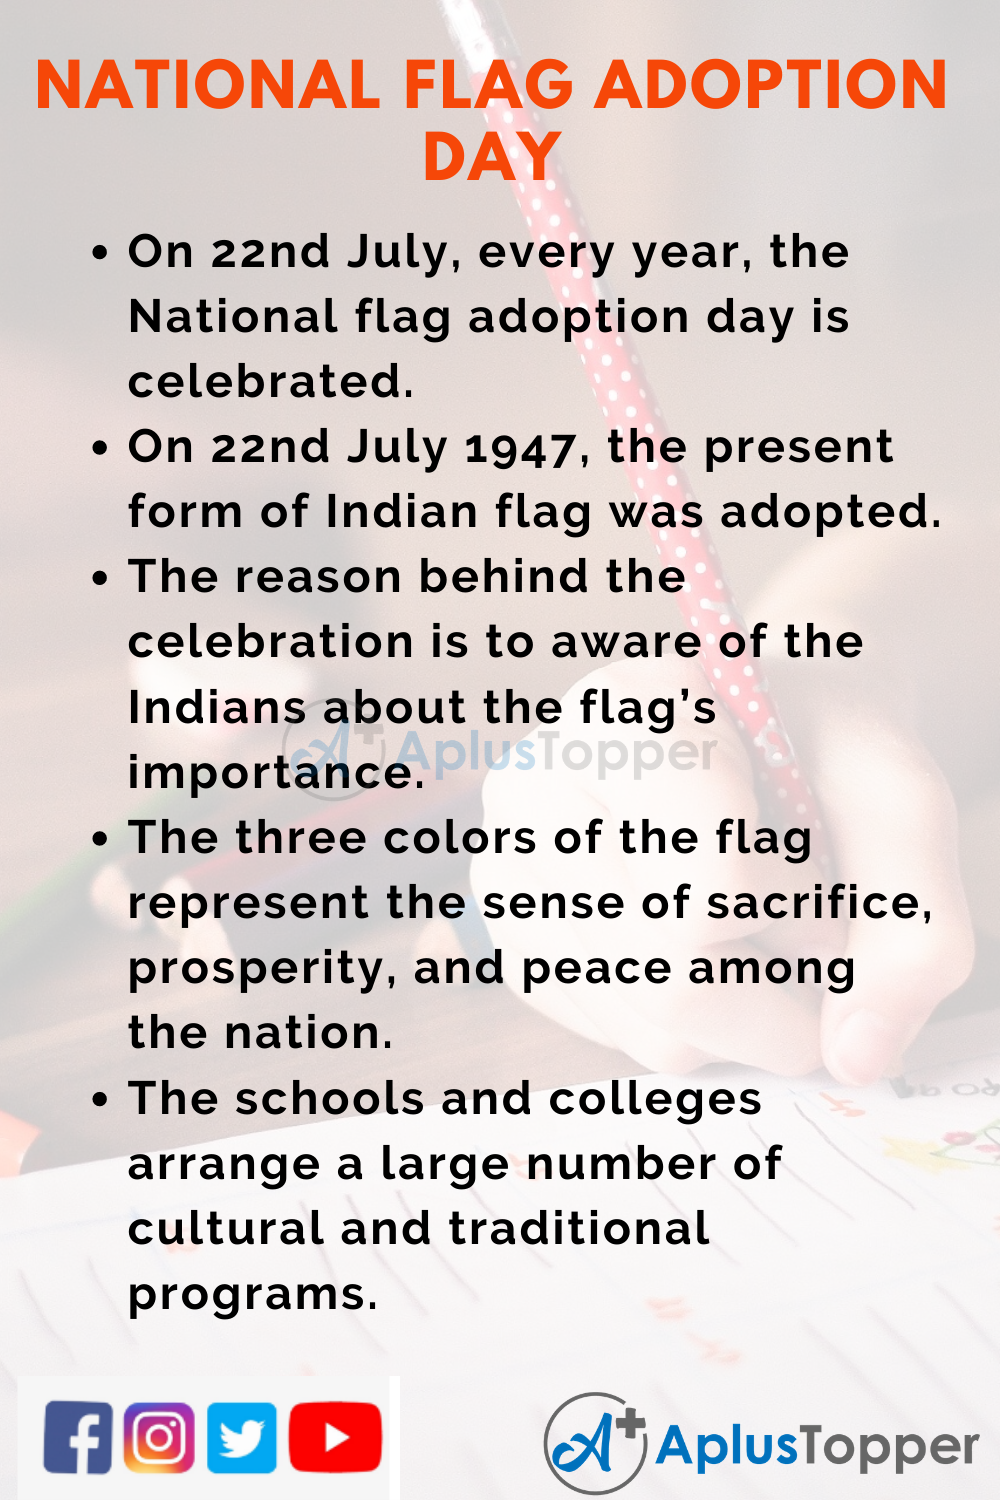 10 Lines On National Flag Adoption Day for Kids